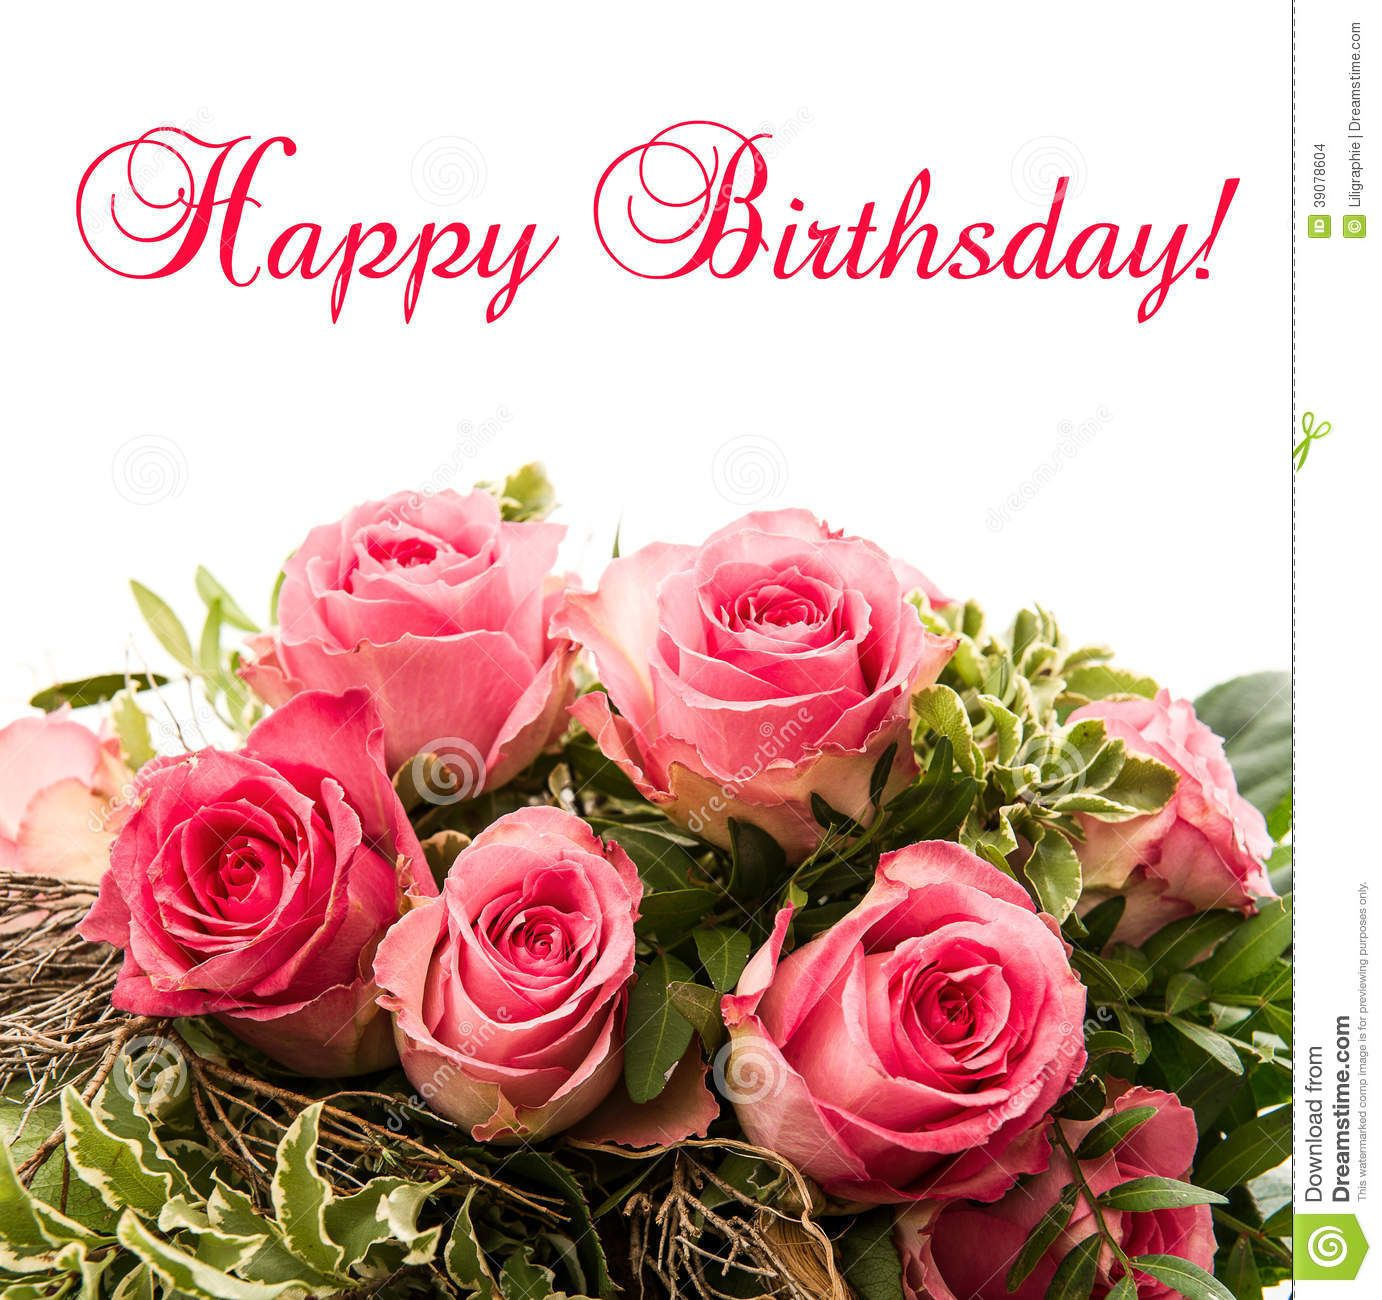 Roses Bouquet Card Happy Birthday Stock Photos 525 Roses Bouquet